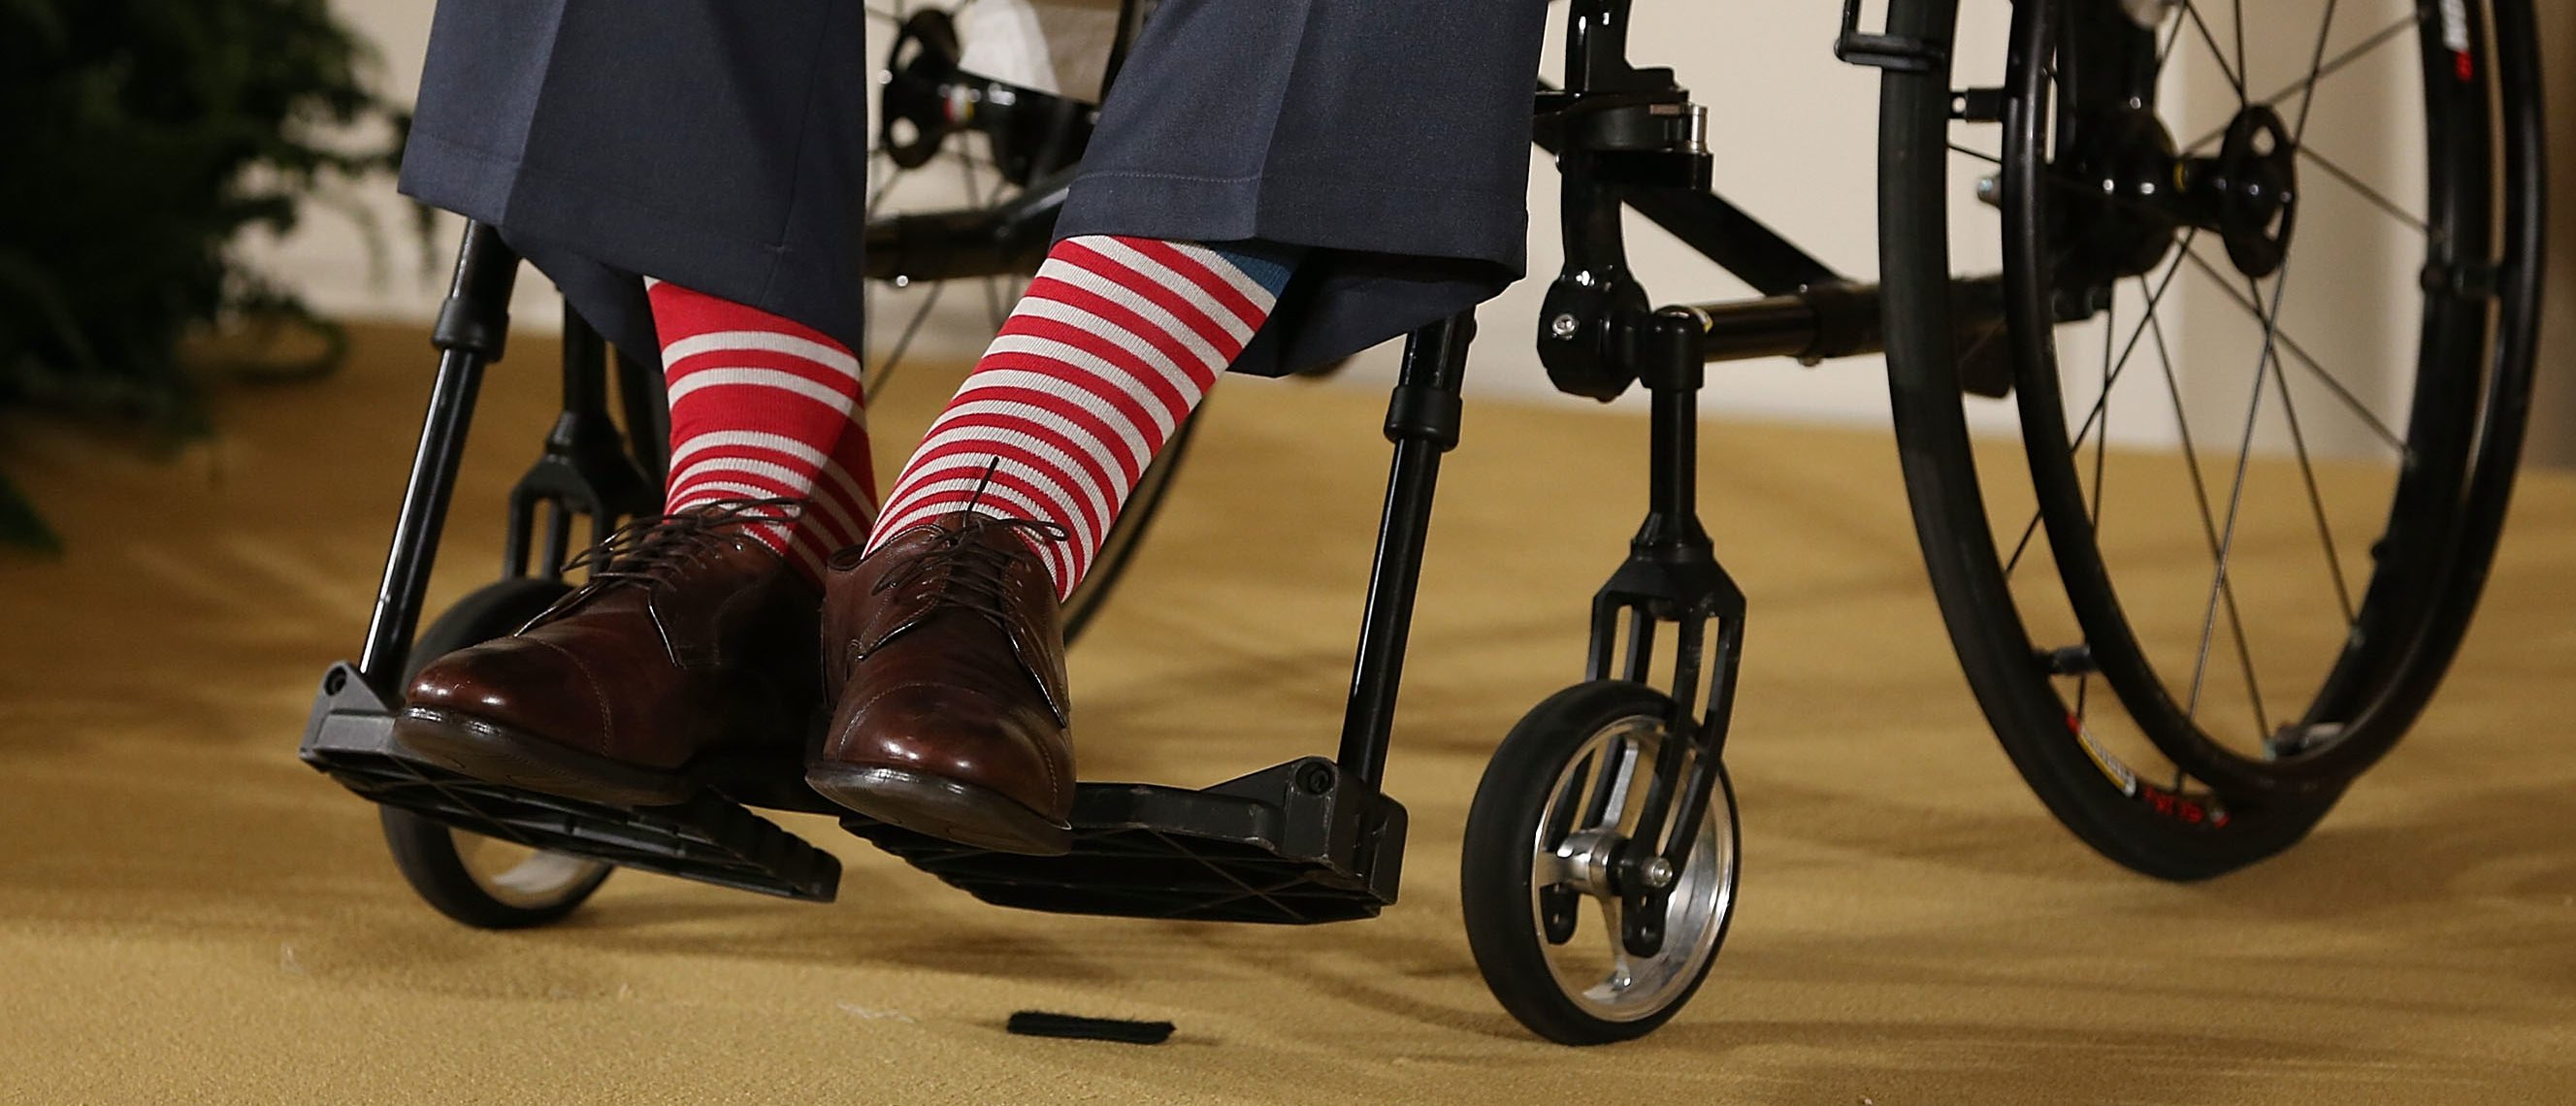 WASHINGTON, DC - JULY 15: Former President George H. W. Bush wears red stripped socks as he sits in a wheelchair during an event in the East Room at the White House, July 15, 2013 in Washington, DC. Bush joined President Obama in hosting the event to honor the 5,000th Daily Point of Light Award winner. (Photo by Mark Wilson/Getty Images)